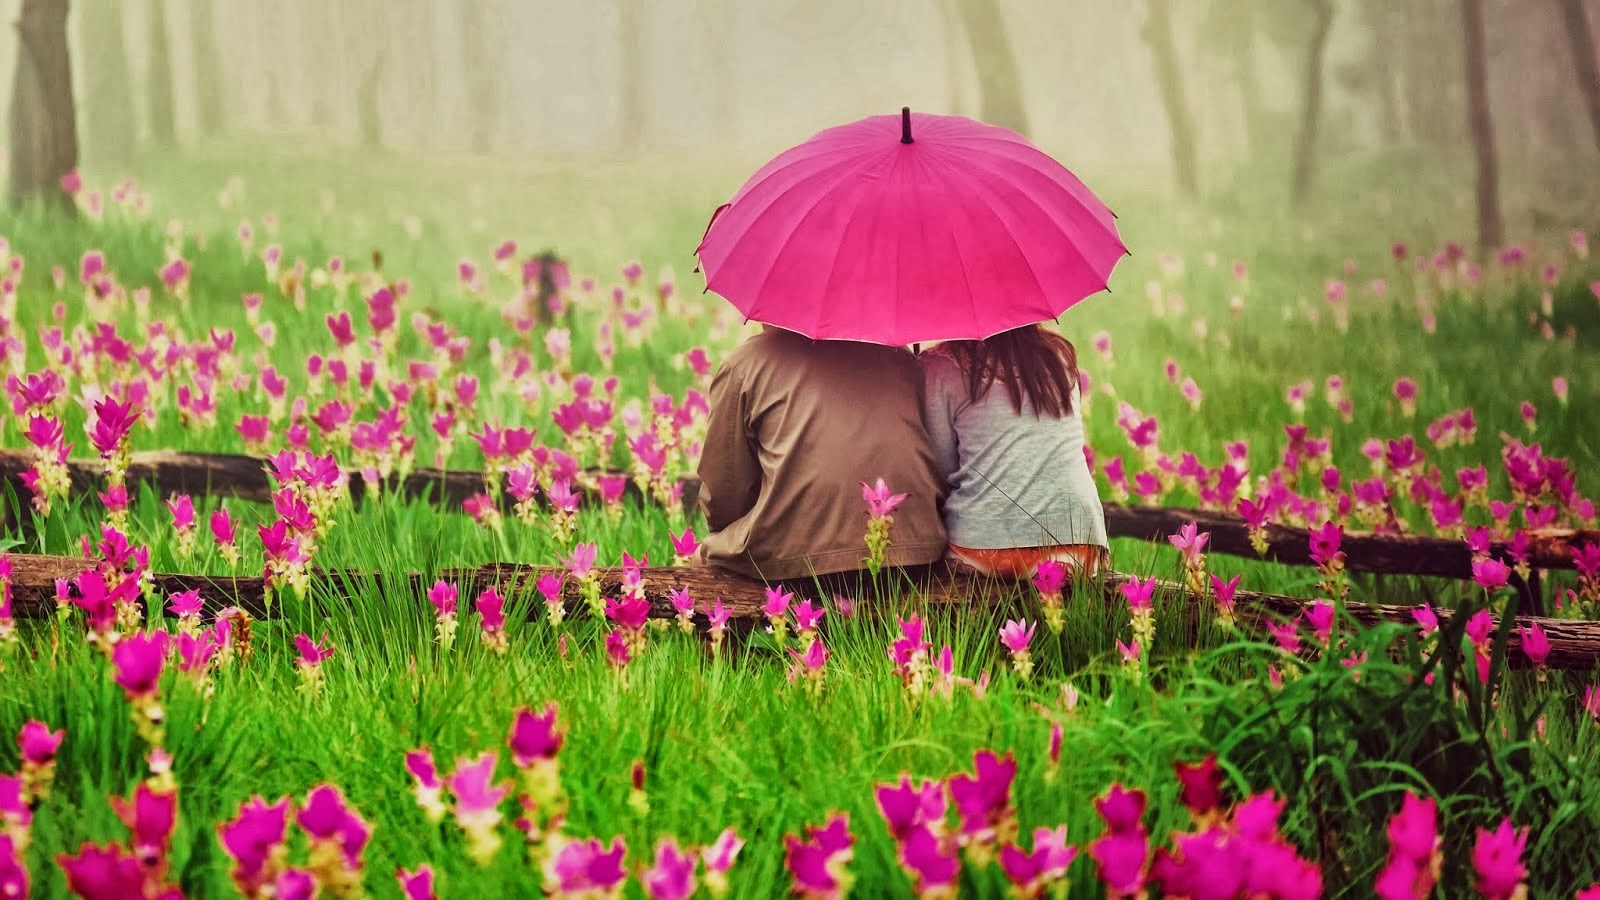 Romantic Love Hd Wallpapers 13 Free Wallpaper - Hdlovewall.com